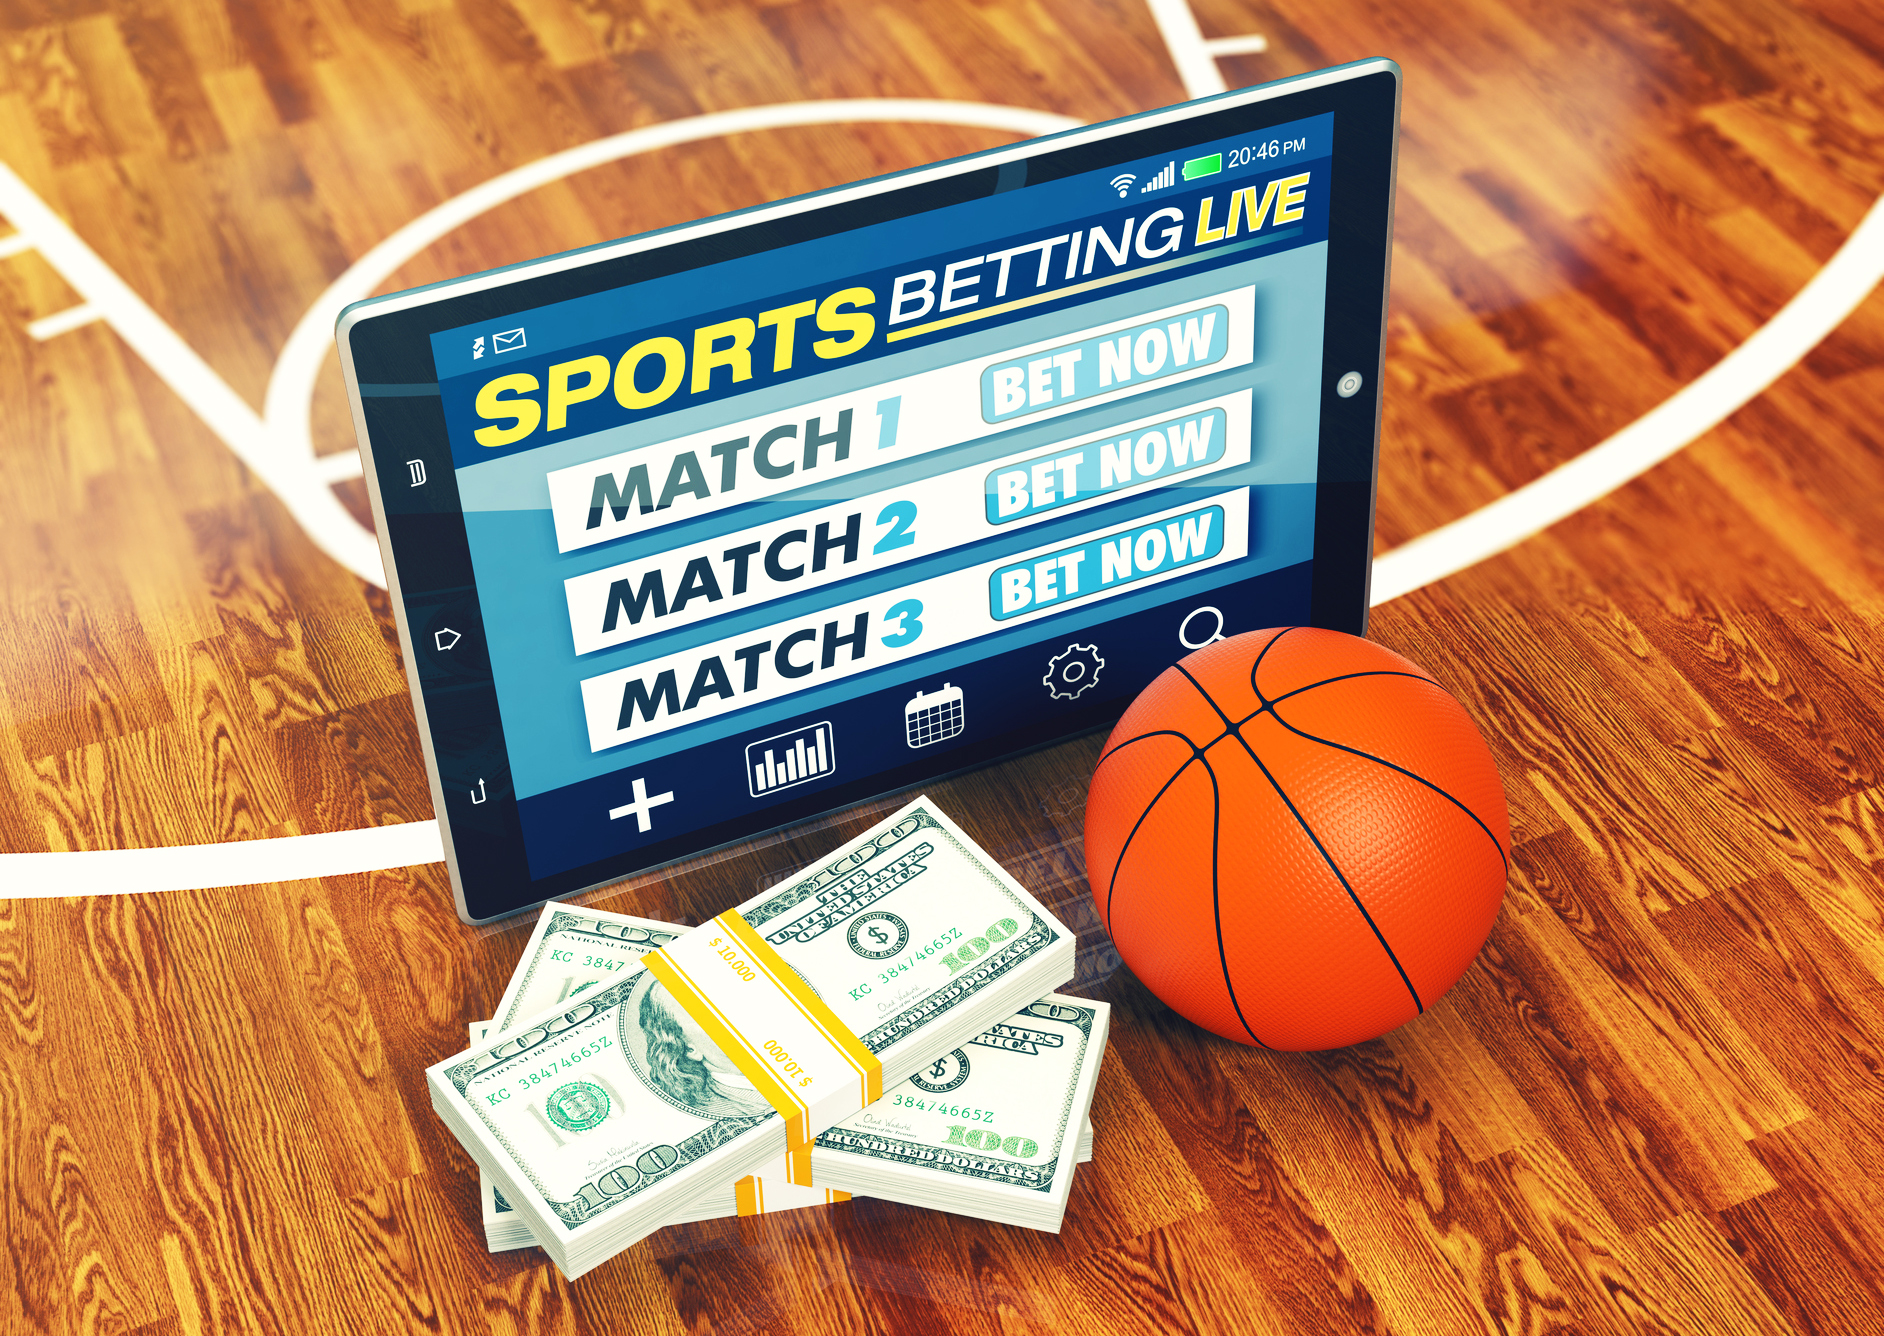 Gamble on sports online legally slots wheel of fortune free games